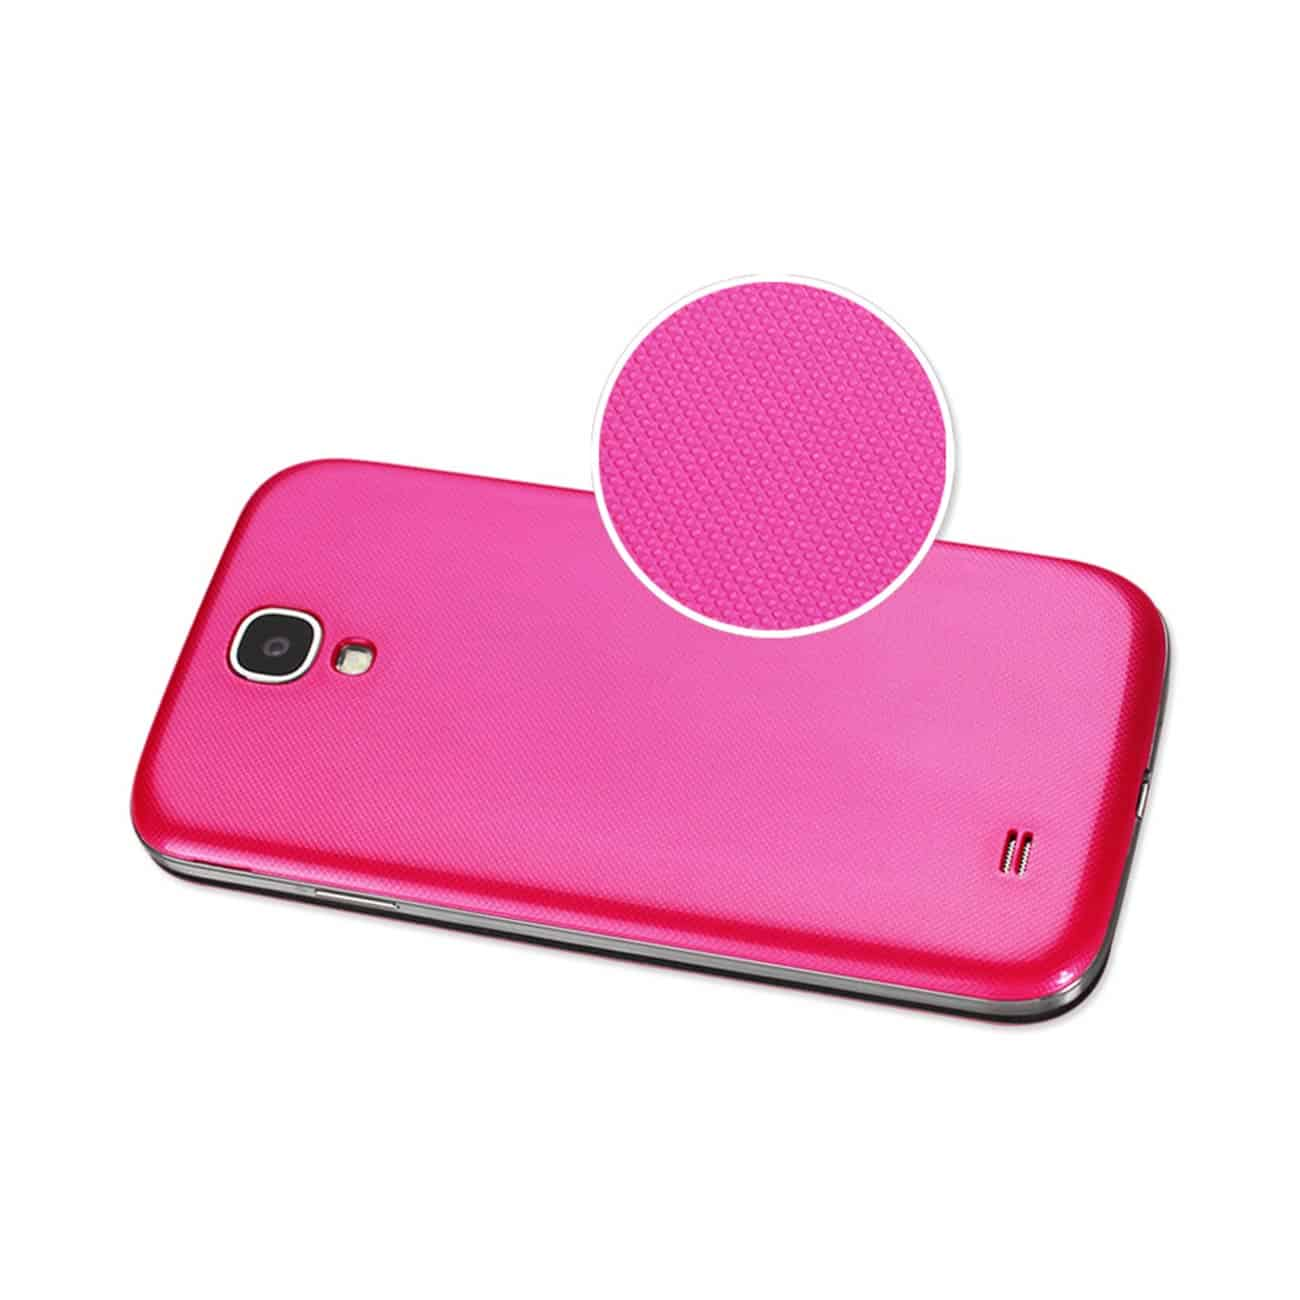 Fitting Case With Battery Cover Samsung Galaxy S4 Hot Pink